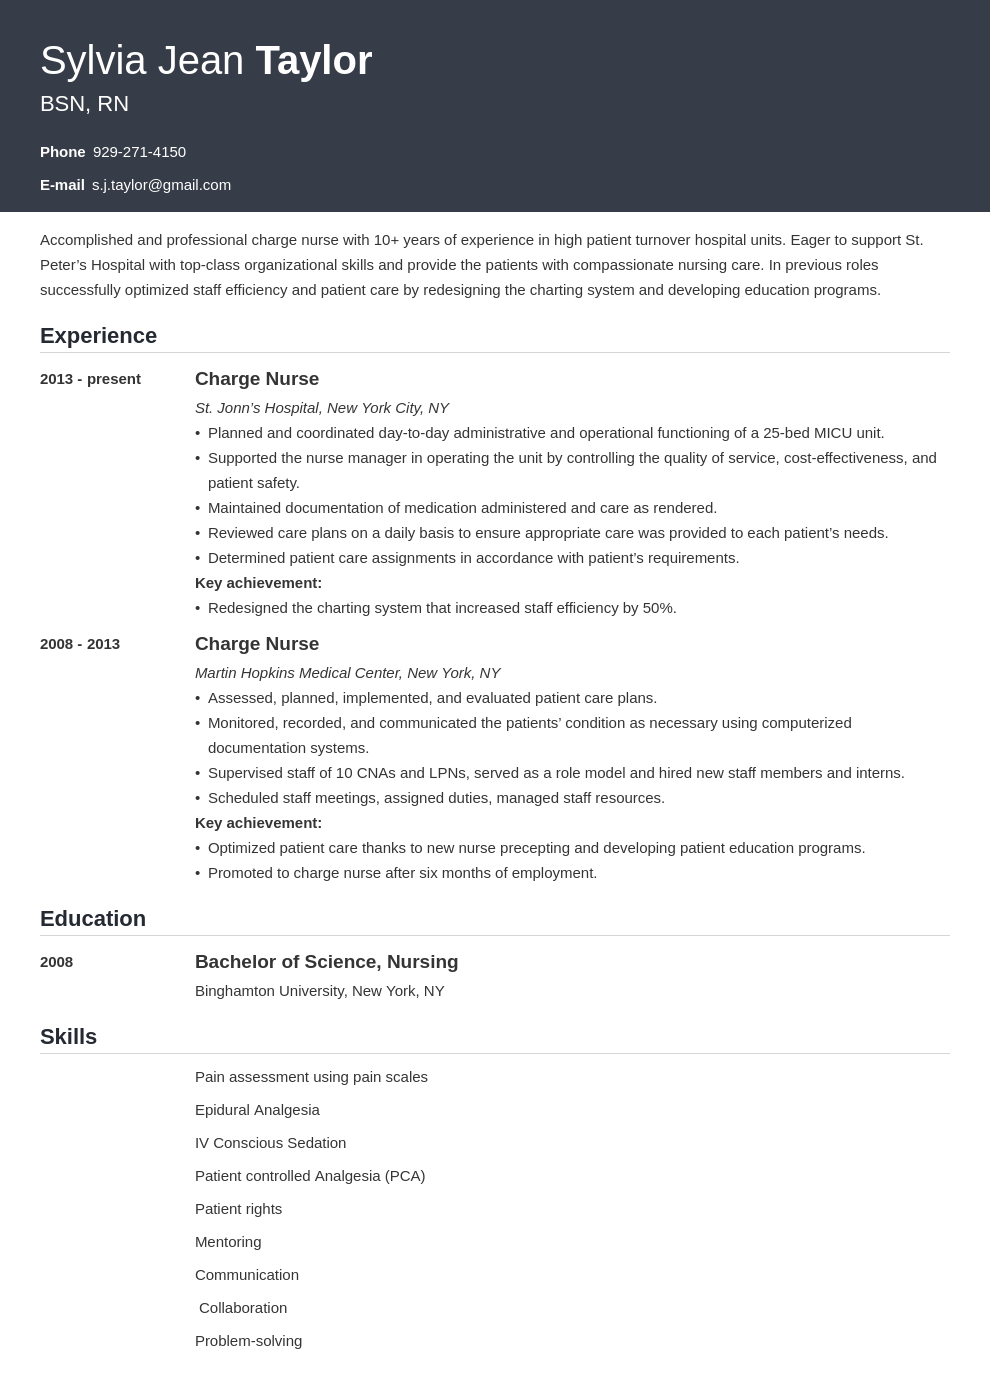 Charge Nurse Resume Examples Amp 20 Job Description Tips